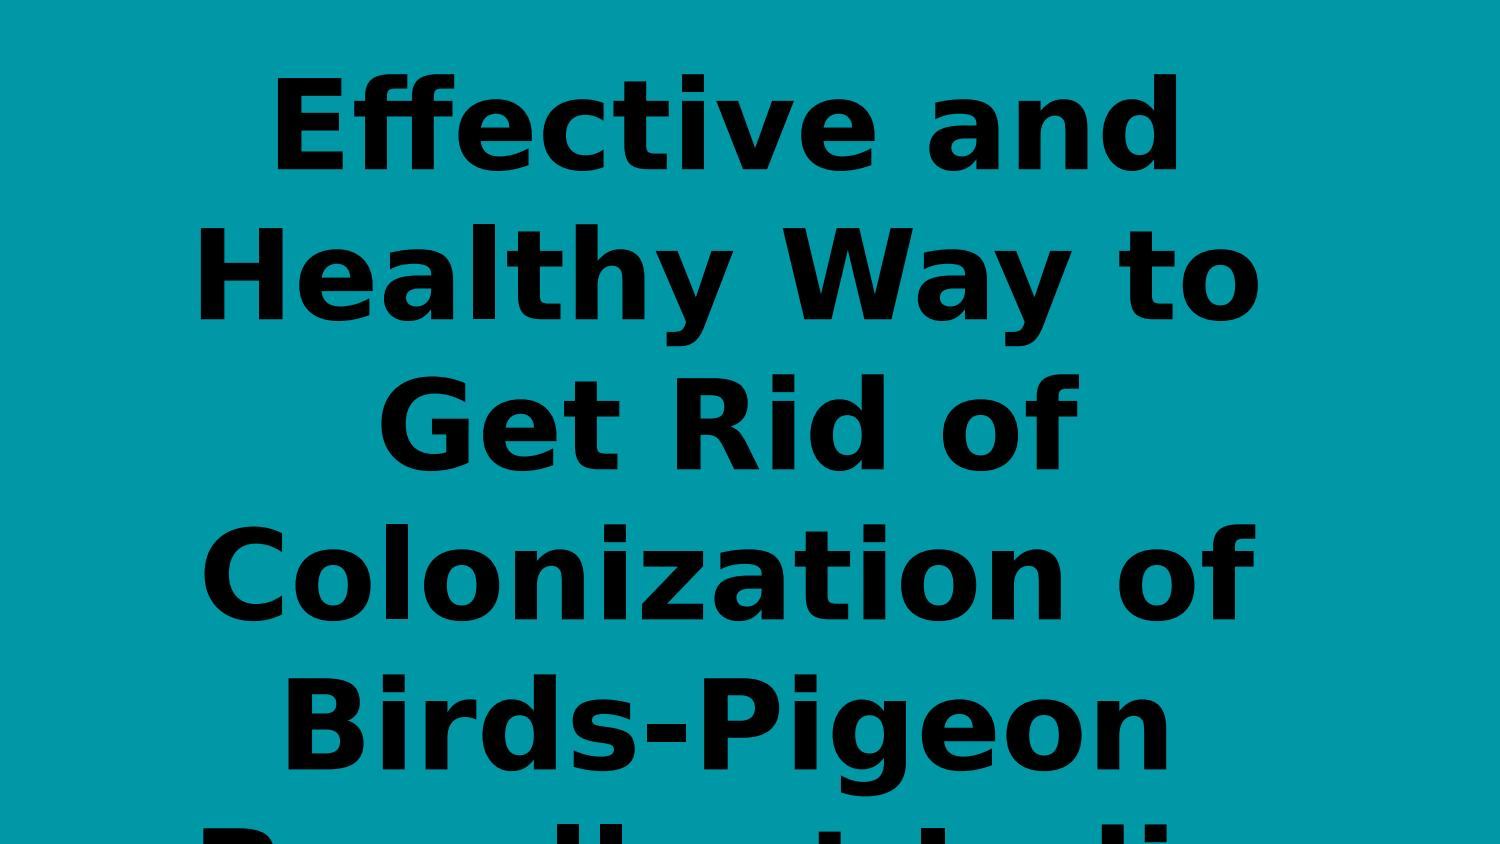 Effective and Healthy Way to Get Rid of Colonization of